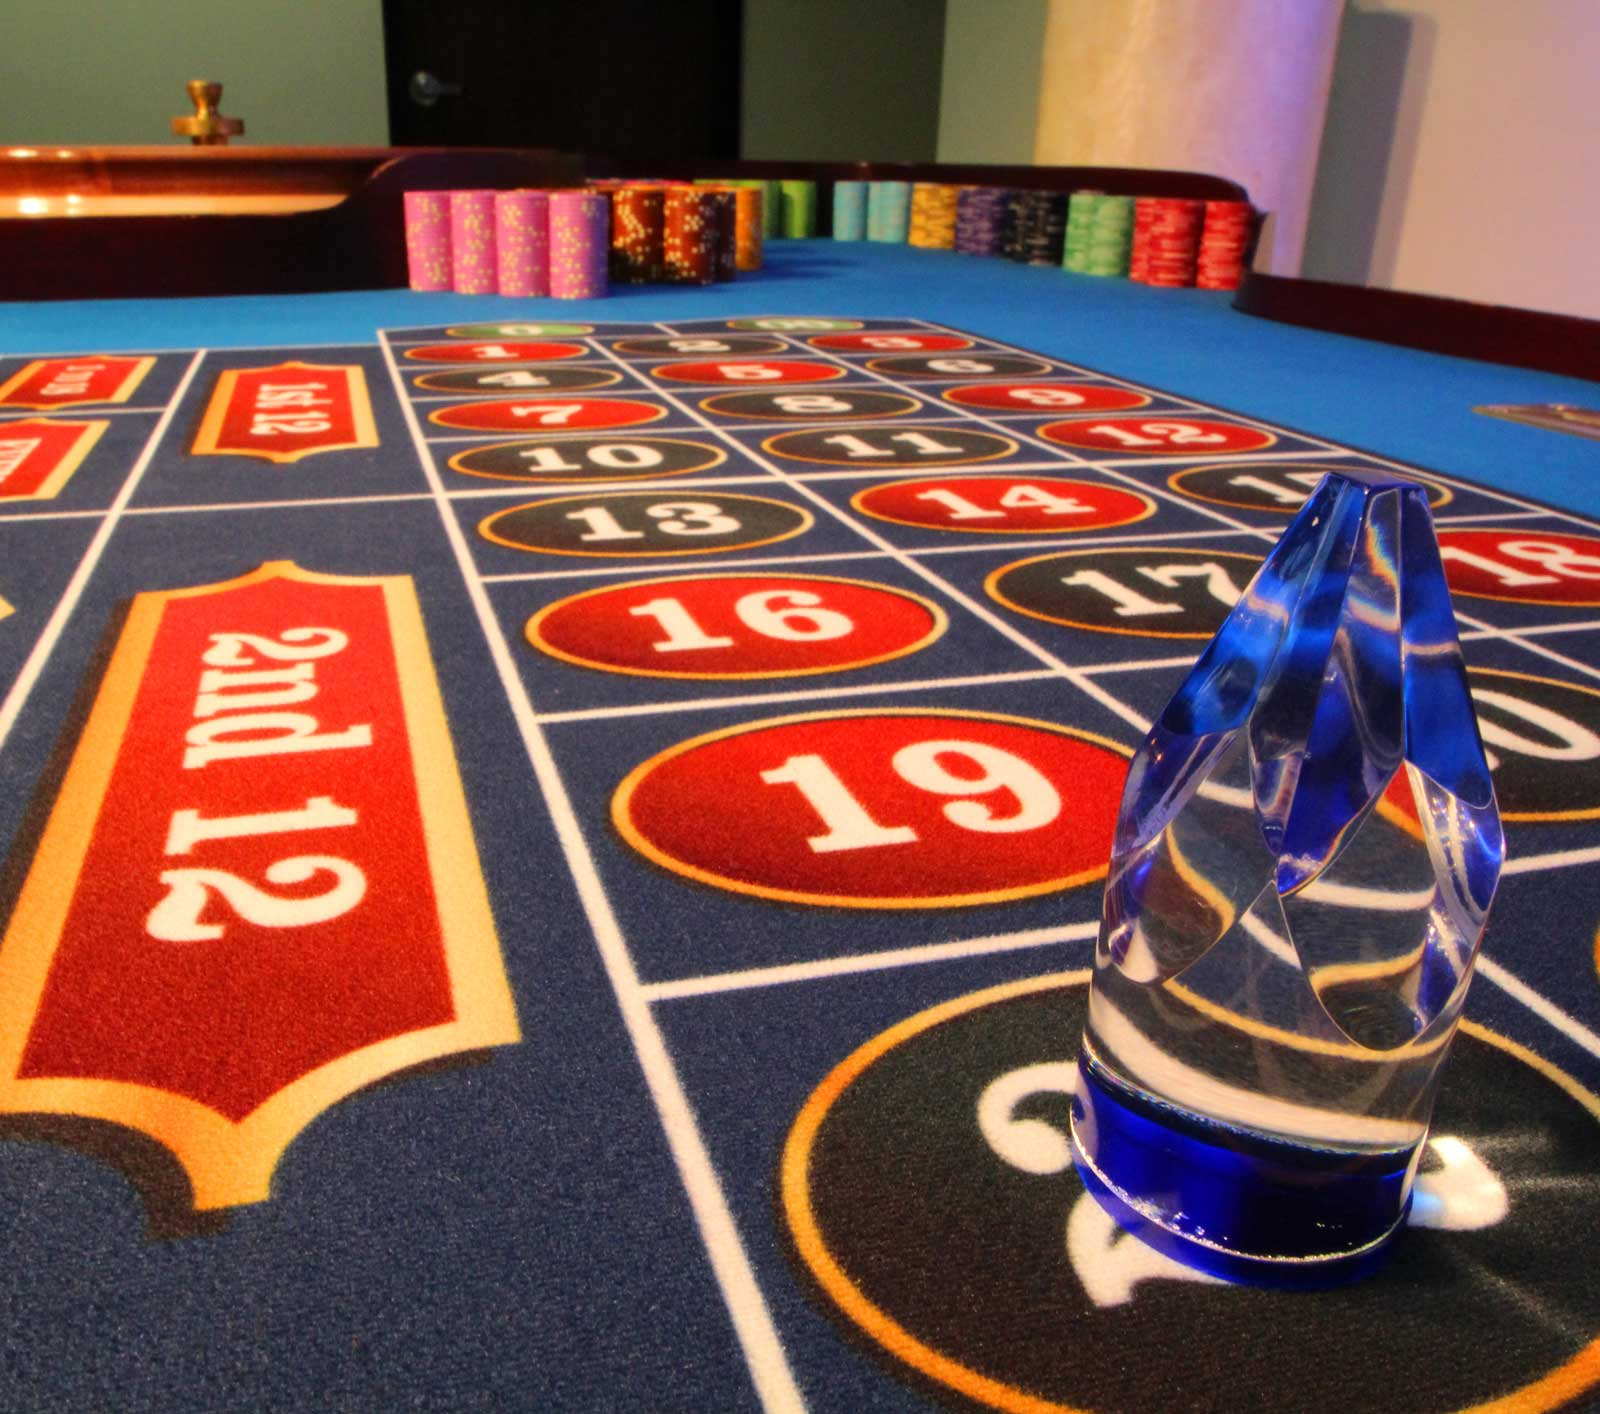 Roulette is Perfect for Socializing with Other Guests as You Play